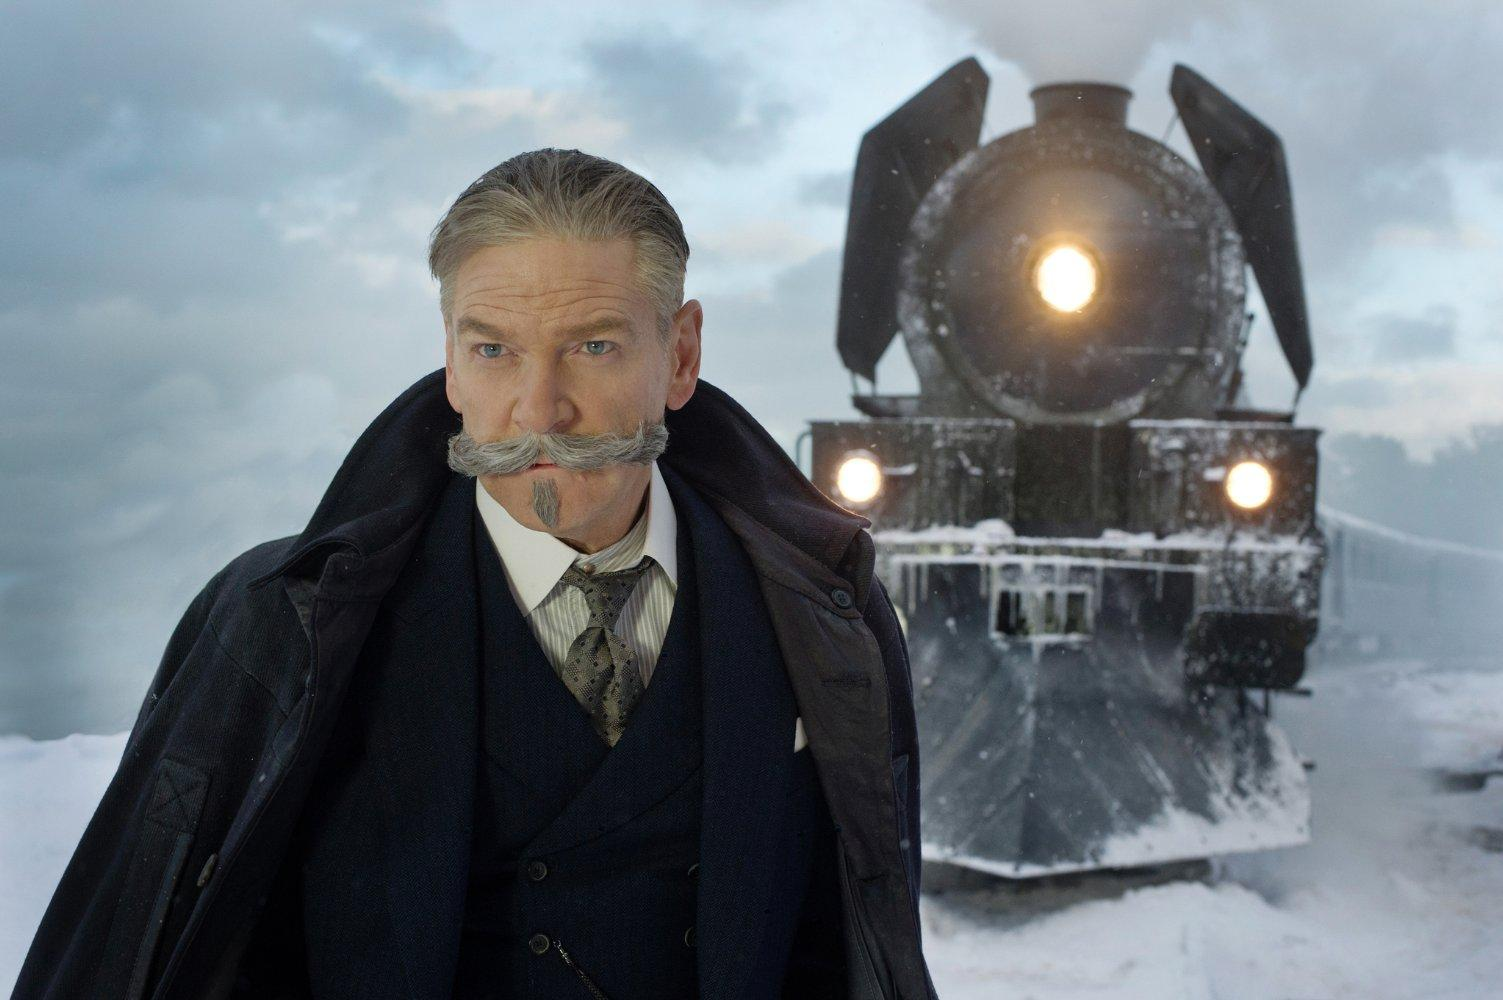 """20TH CENTURY FOX Kenneth Branagh is lead actor and director in """"Murder on the Orient Express."""" He plays fictional, world-renowned detective, Hercule Poirot, solving a whodunit murder mystery on a derailed express train in 1933. The film opened third at the U.S. box office with $28.2 million."""